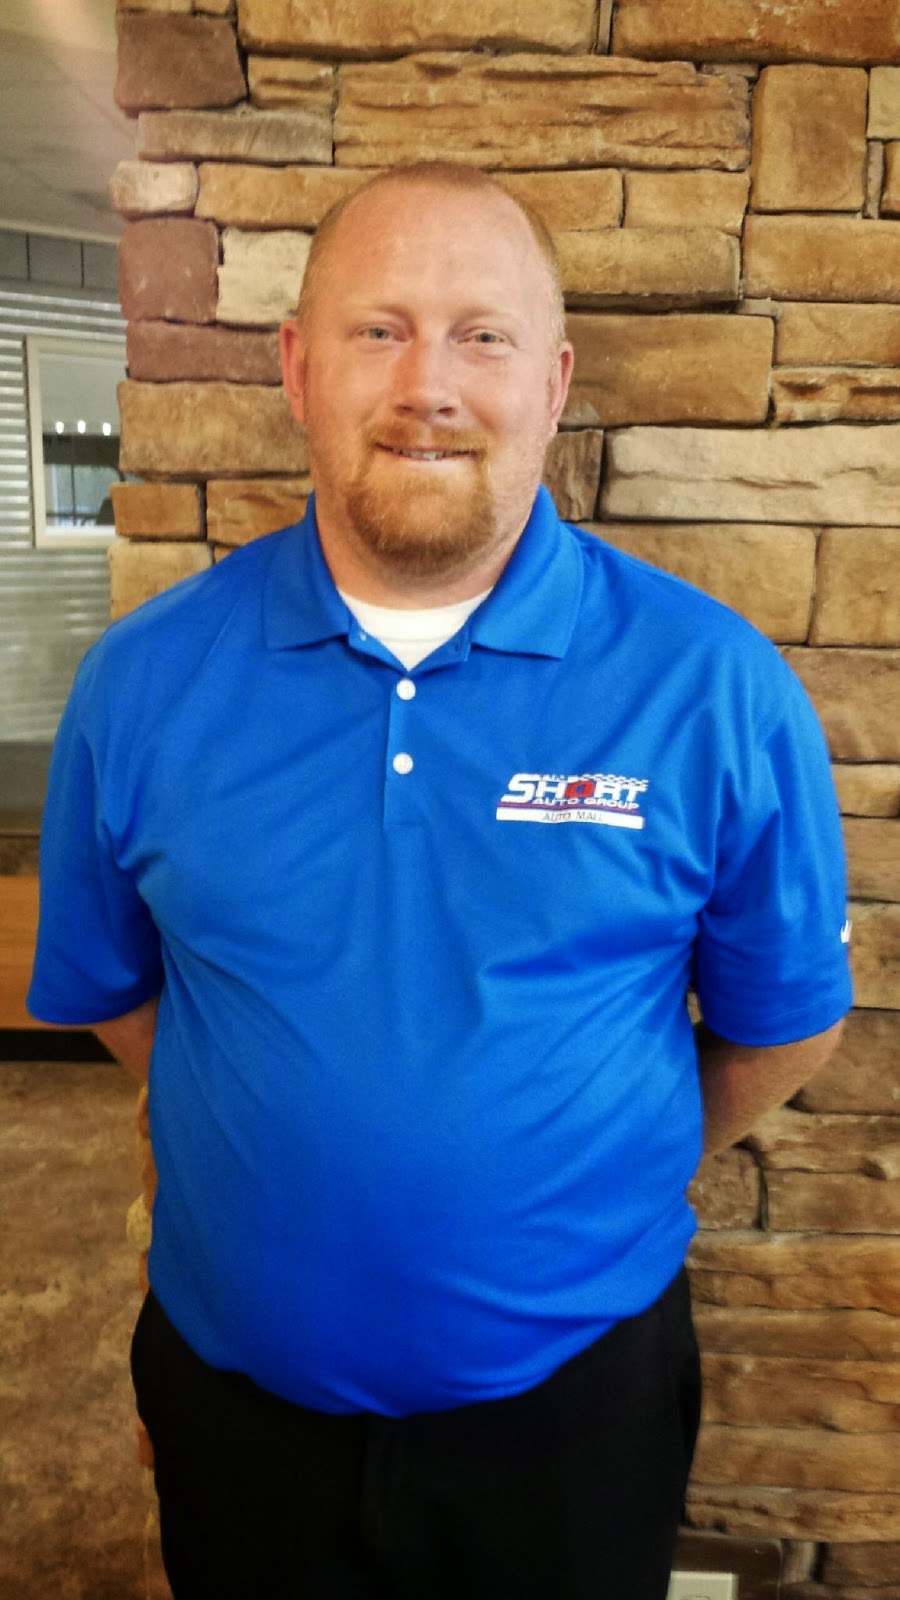 Tim Short Corbin Ky >> Tim Short Auto Mall Our Awesome Sales Staff At The Tim Short Auto